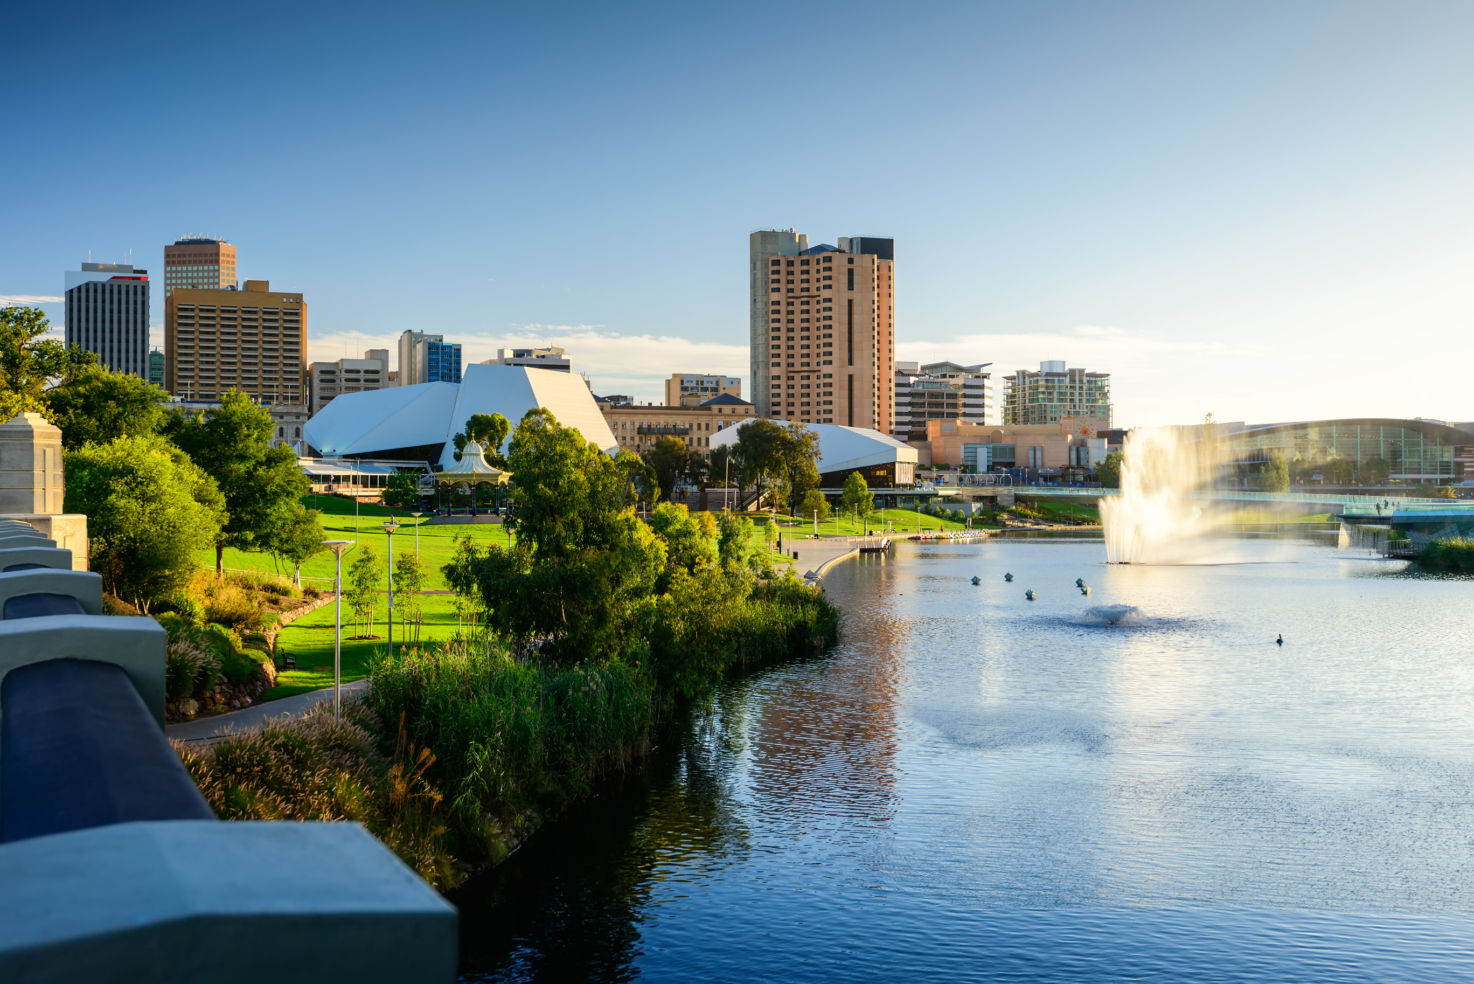 In 2013 Adelaide was ranked as the fifth-most liveable city in the world.